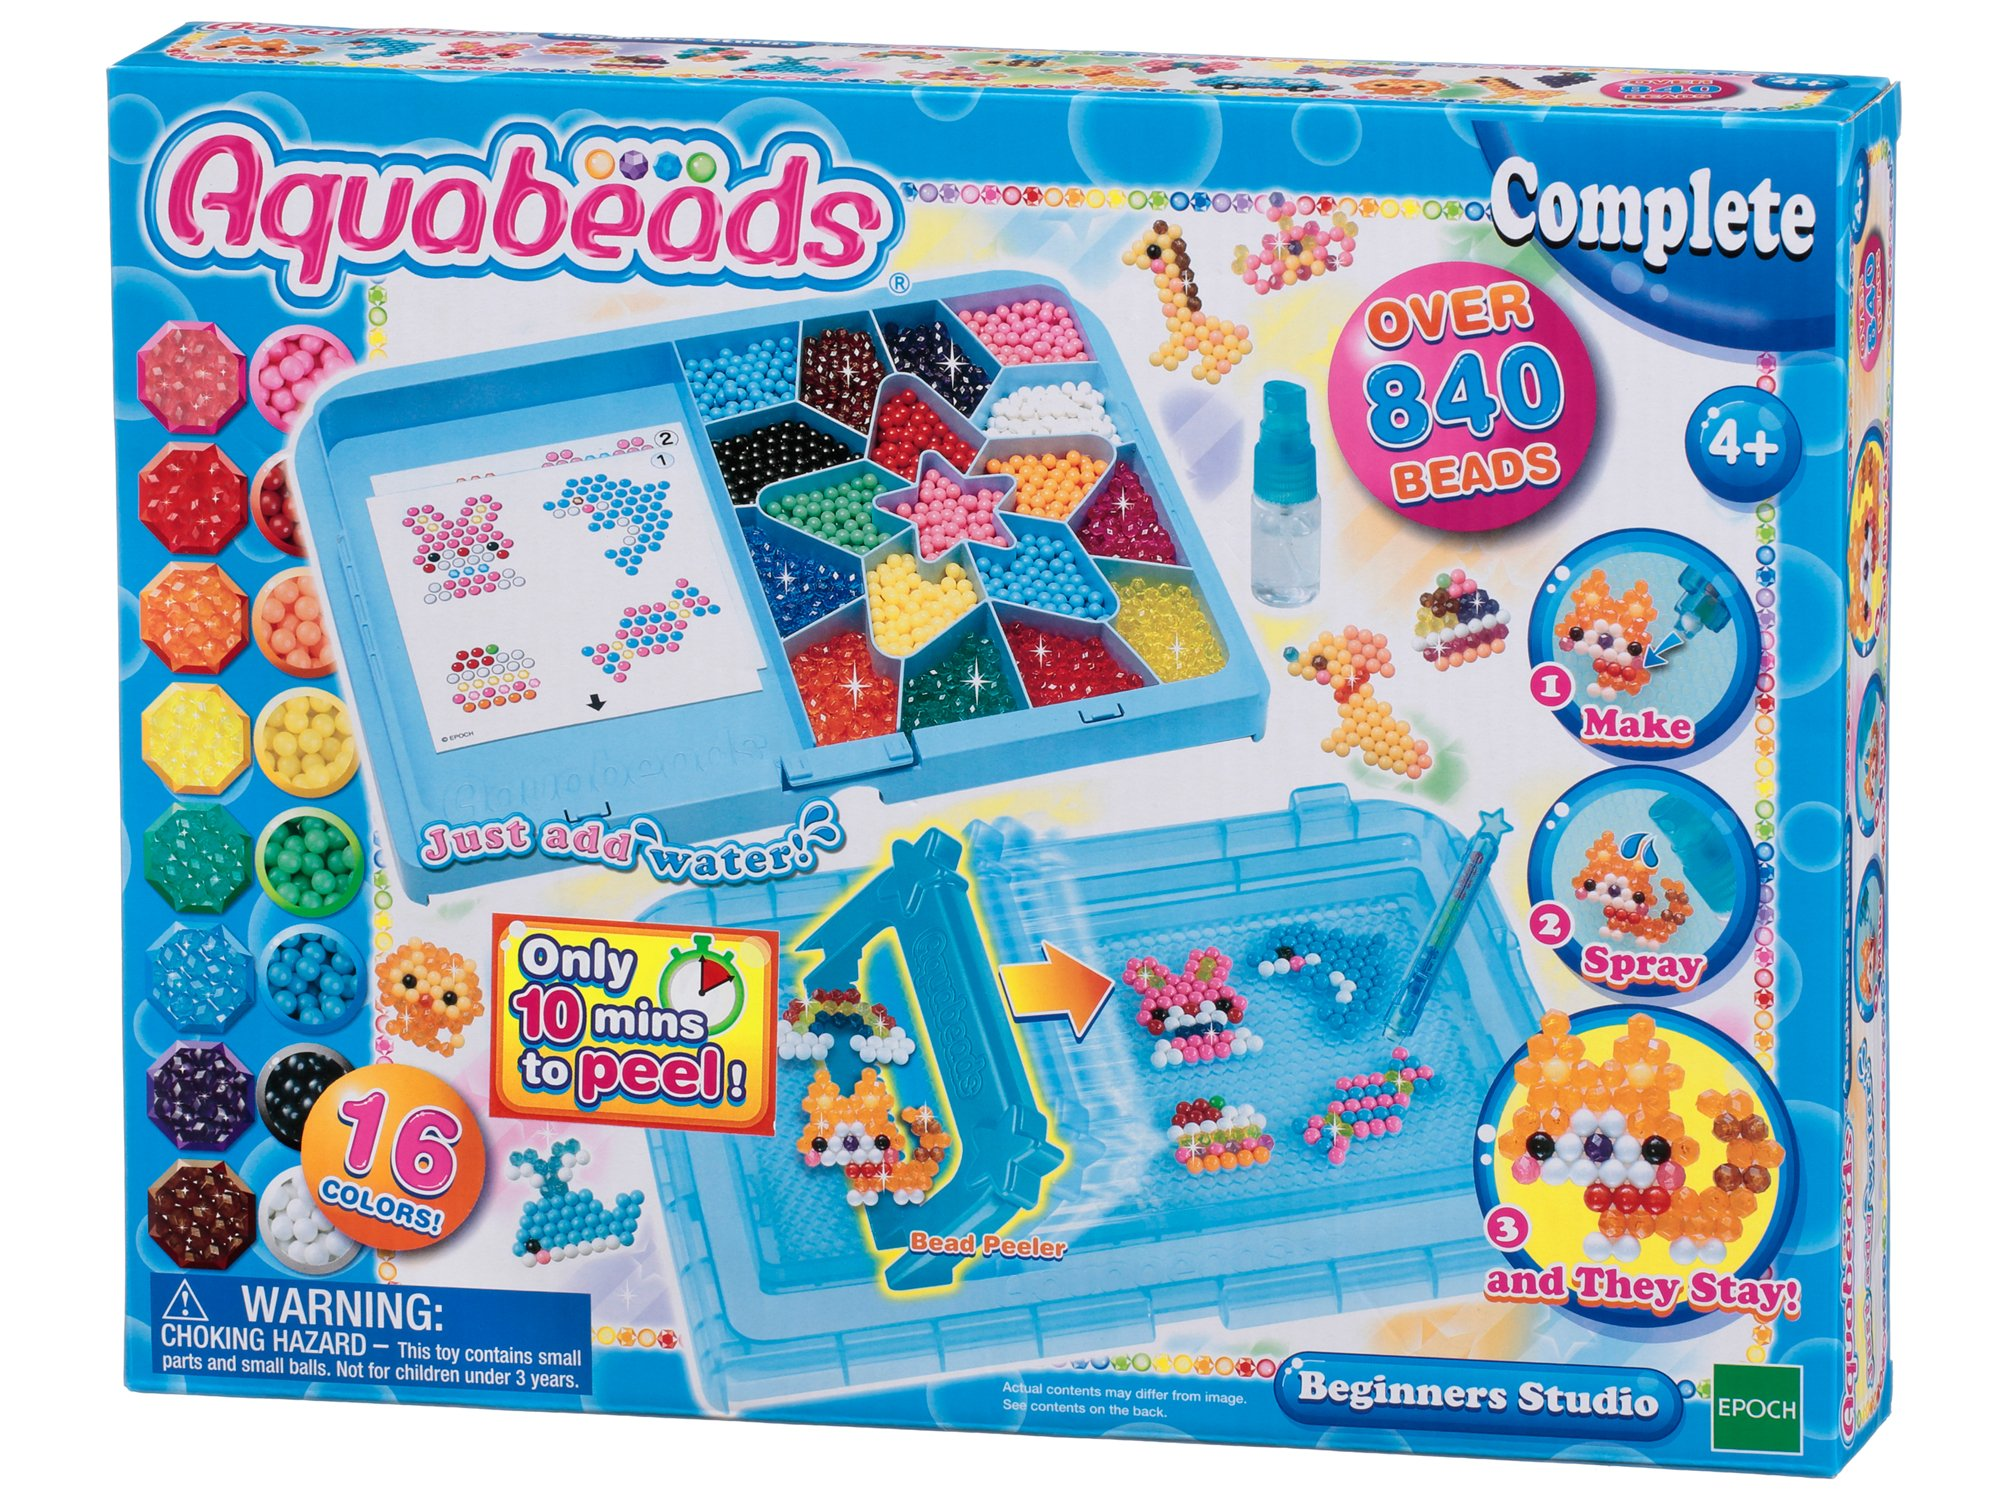 Aquabeads-30248 Beginners Studio, (Epoch AB30248) product image